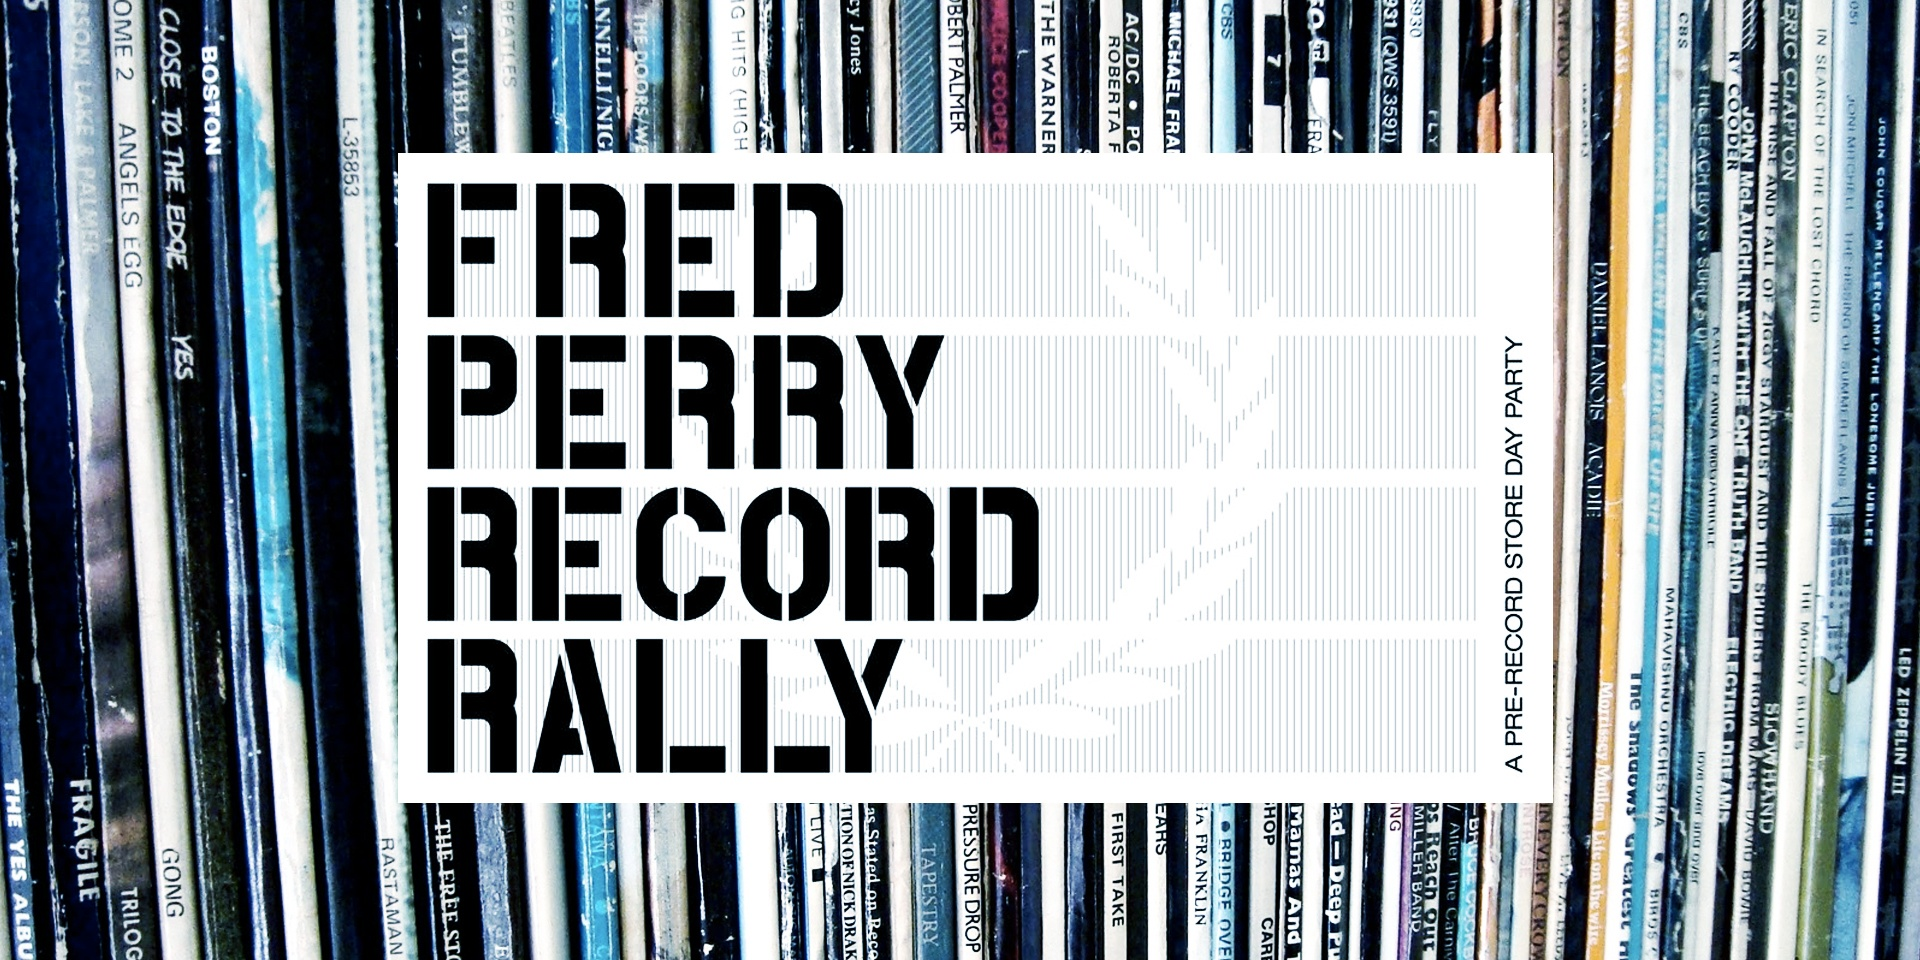 Fred Perry Record Rally promises crate-digging fun at Chye Seng Huat Hardware